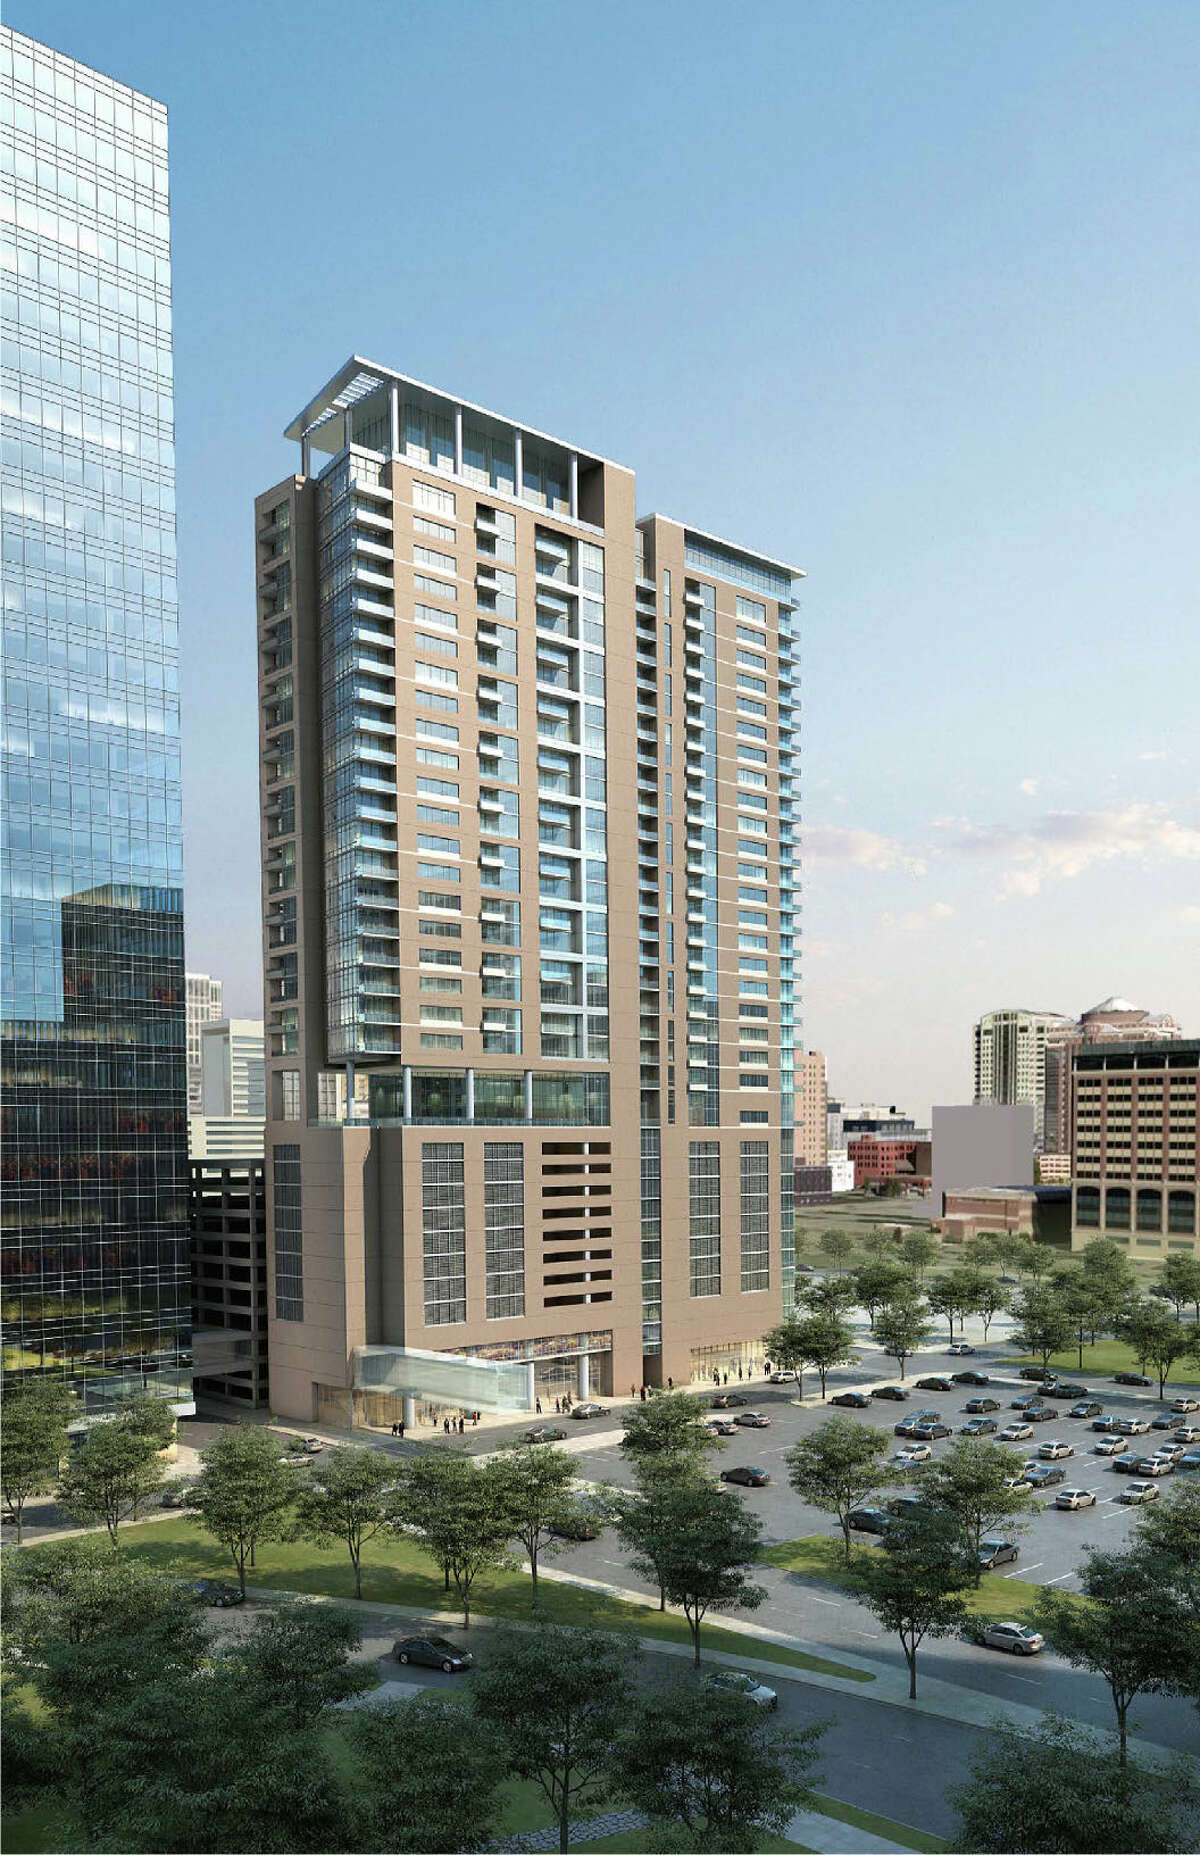 Ziegler Cooper designed this Trammell Crow residential tower slated for downtown Houston. (Courtesy of Houston Downtown Management District)